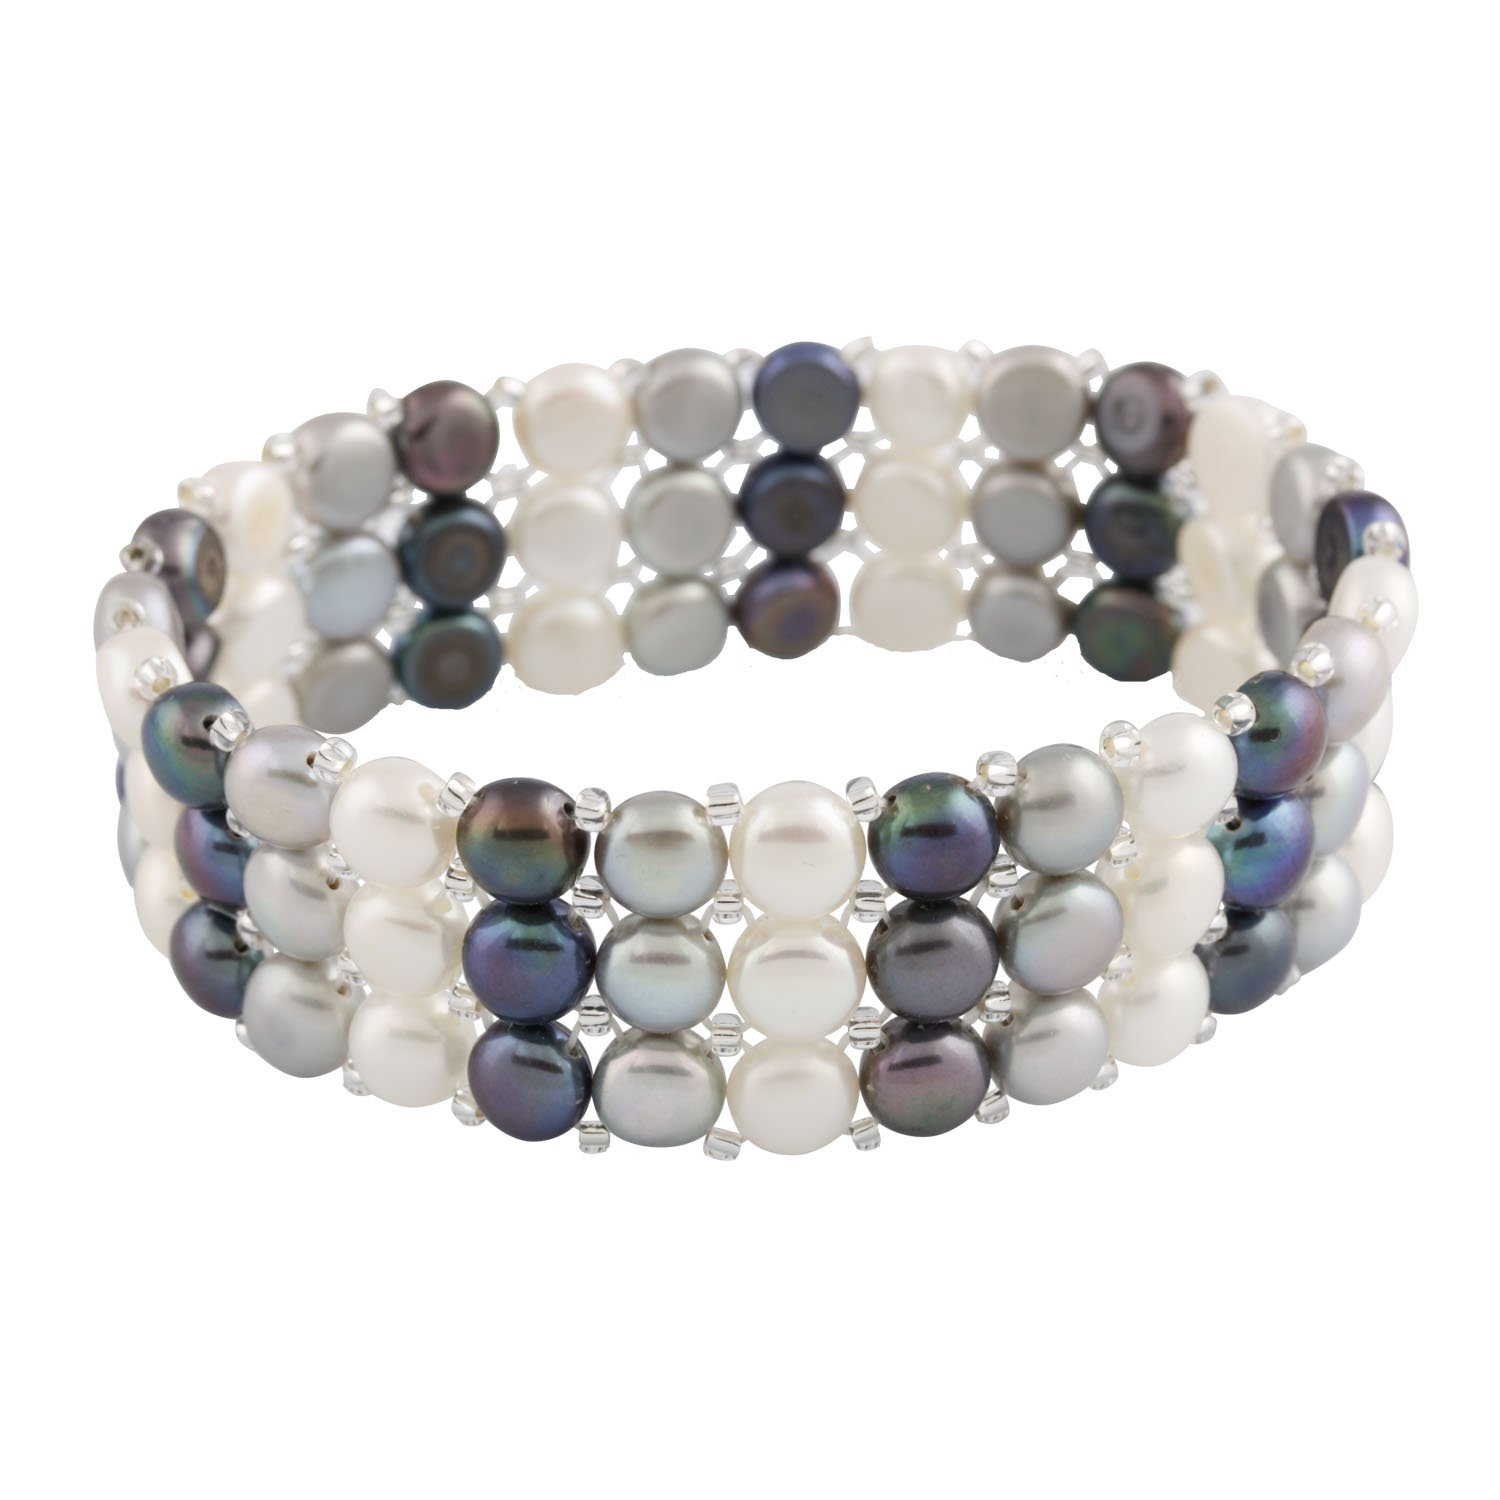 3-Row Handpicked Multicolor 6.5-7mm Freshwater Cultured Pearls Elastic Stretch Gatsby Flapper Style Bracelet